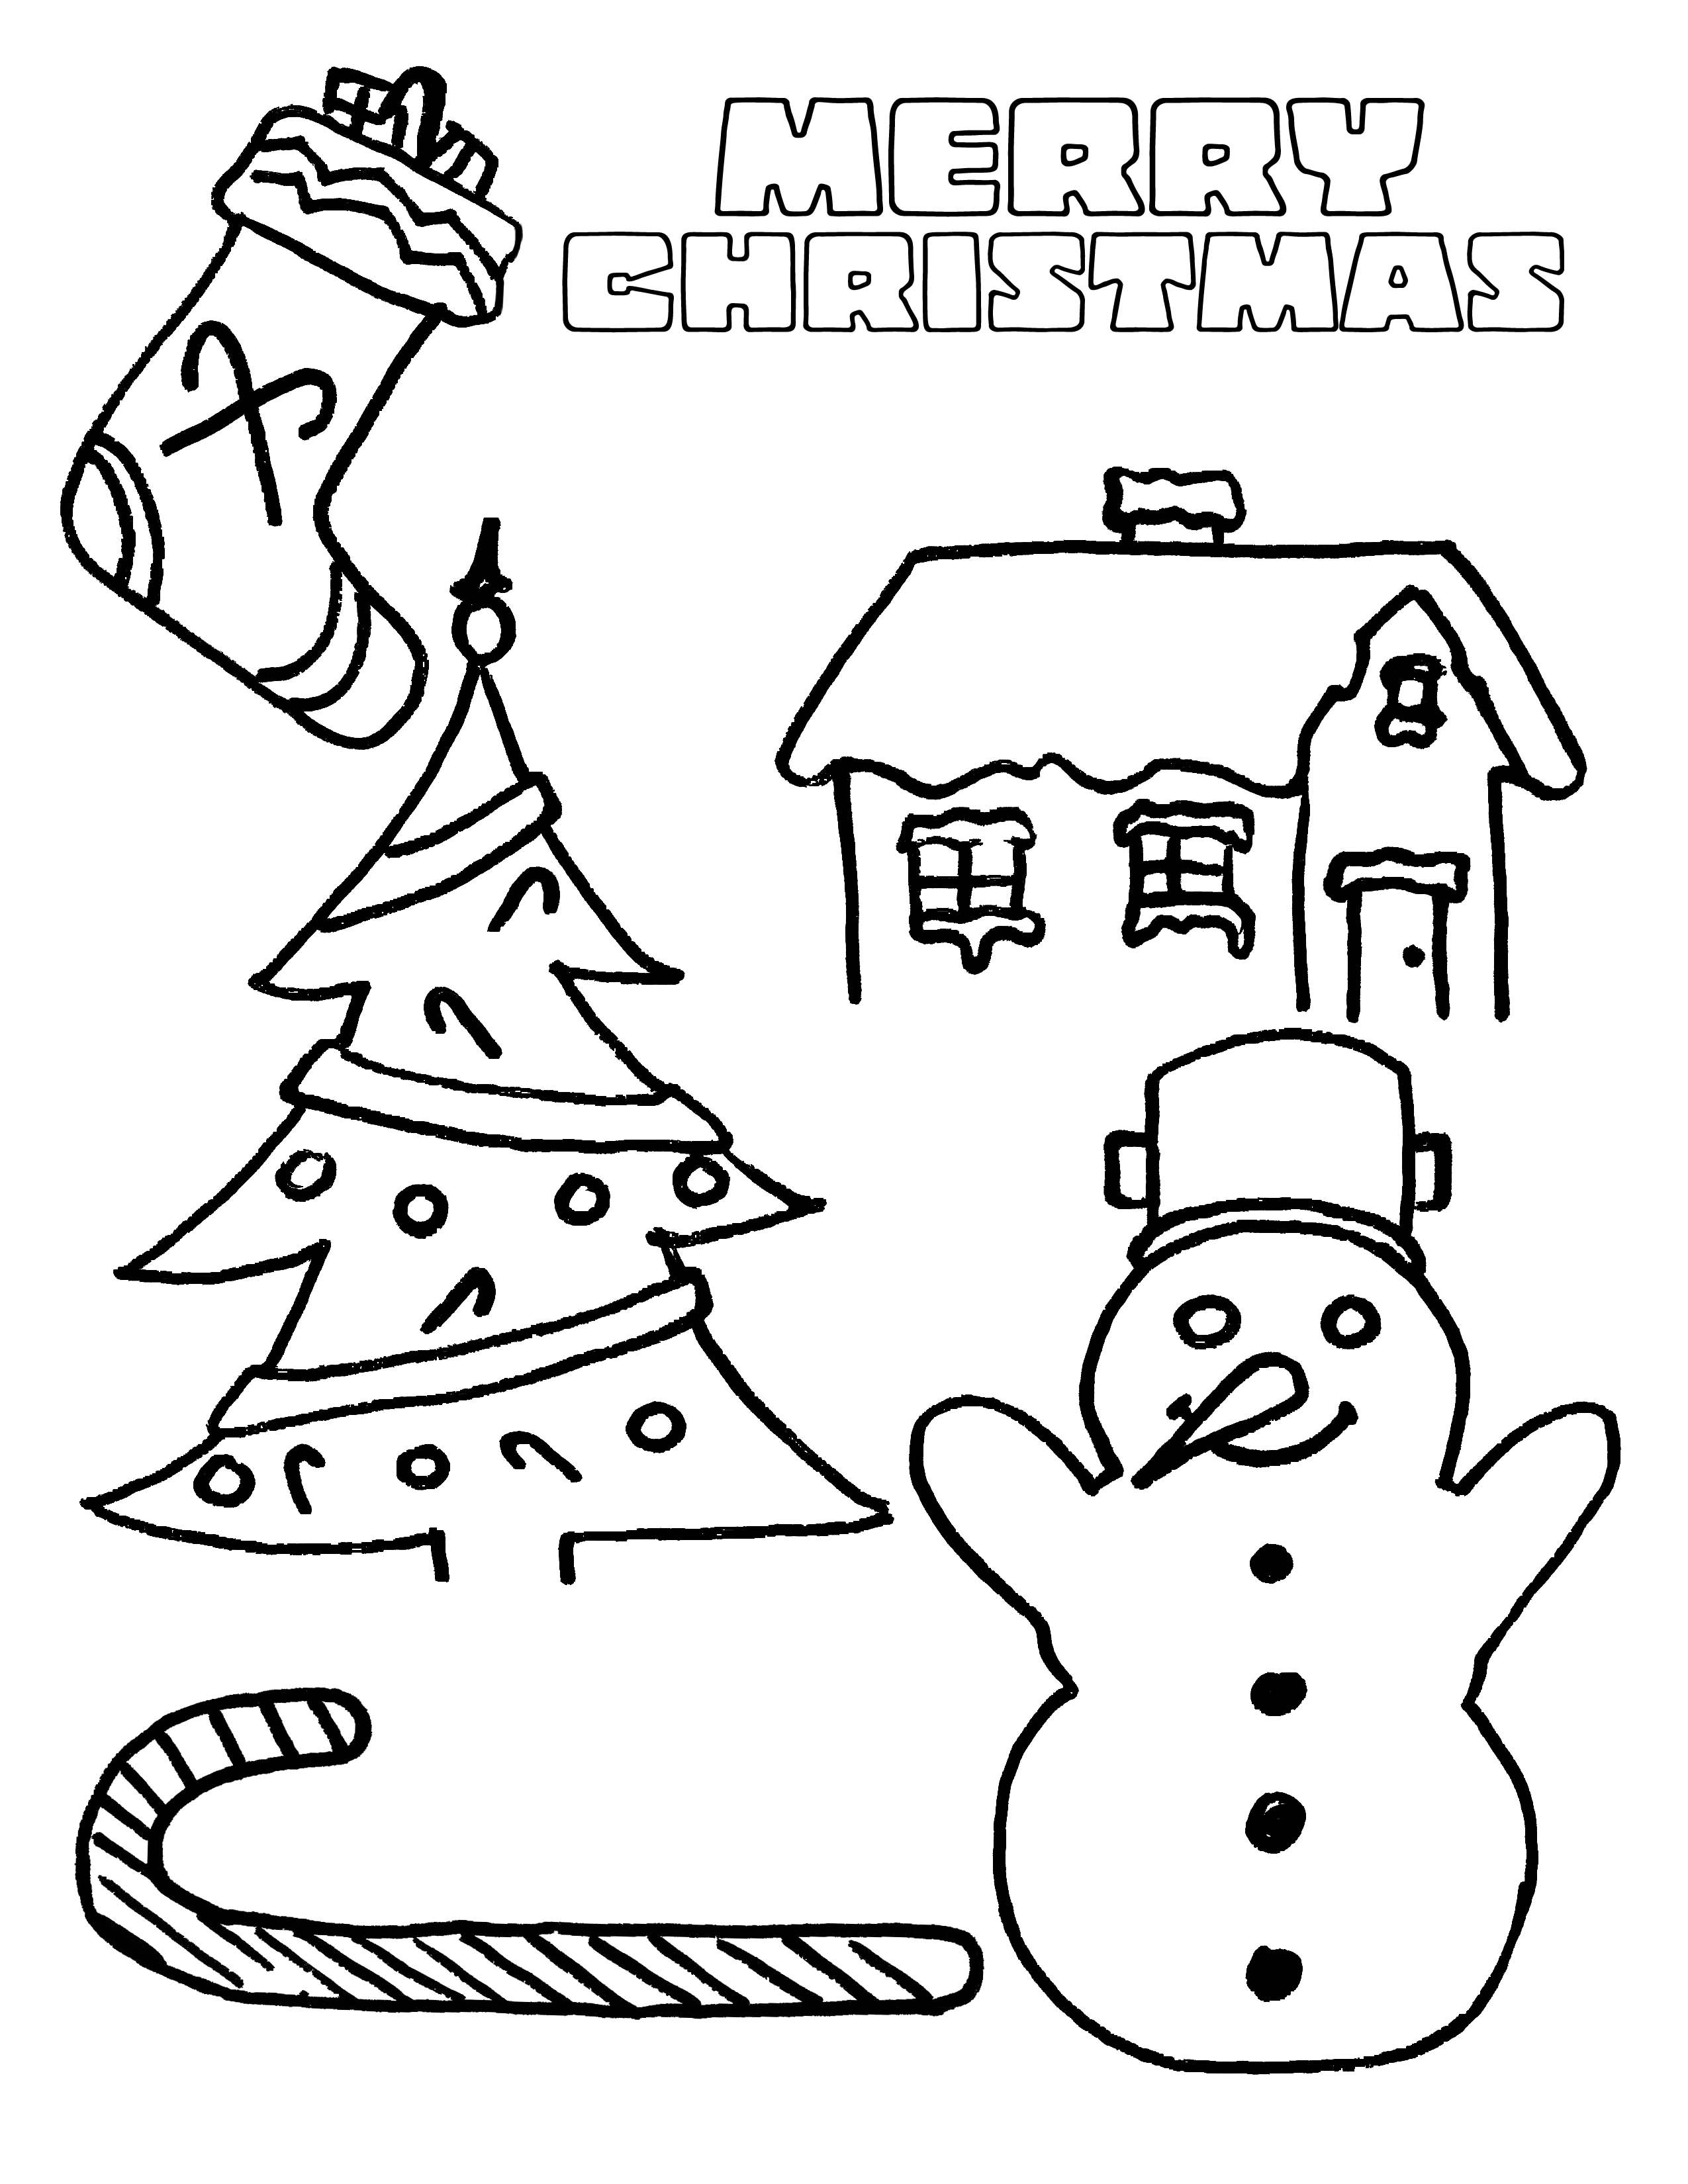 2550x3300 party simplicity free christmas coloring page for kids - Coloring Sheets Christmas Free